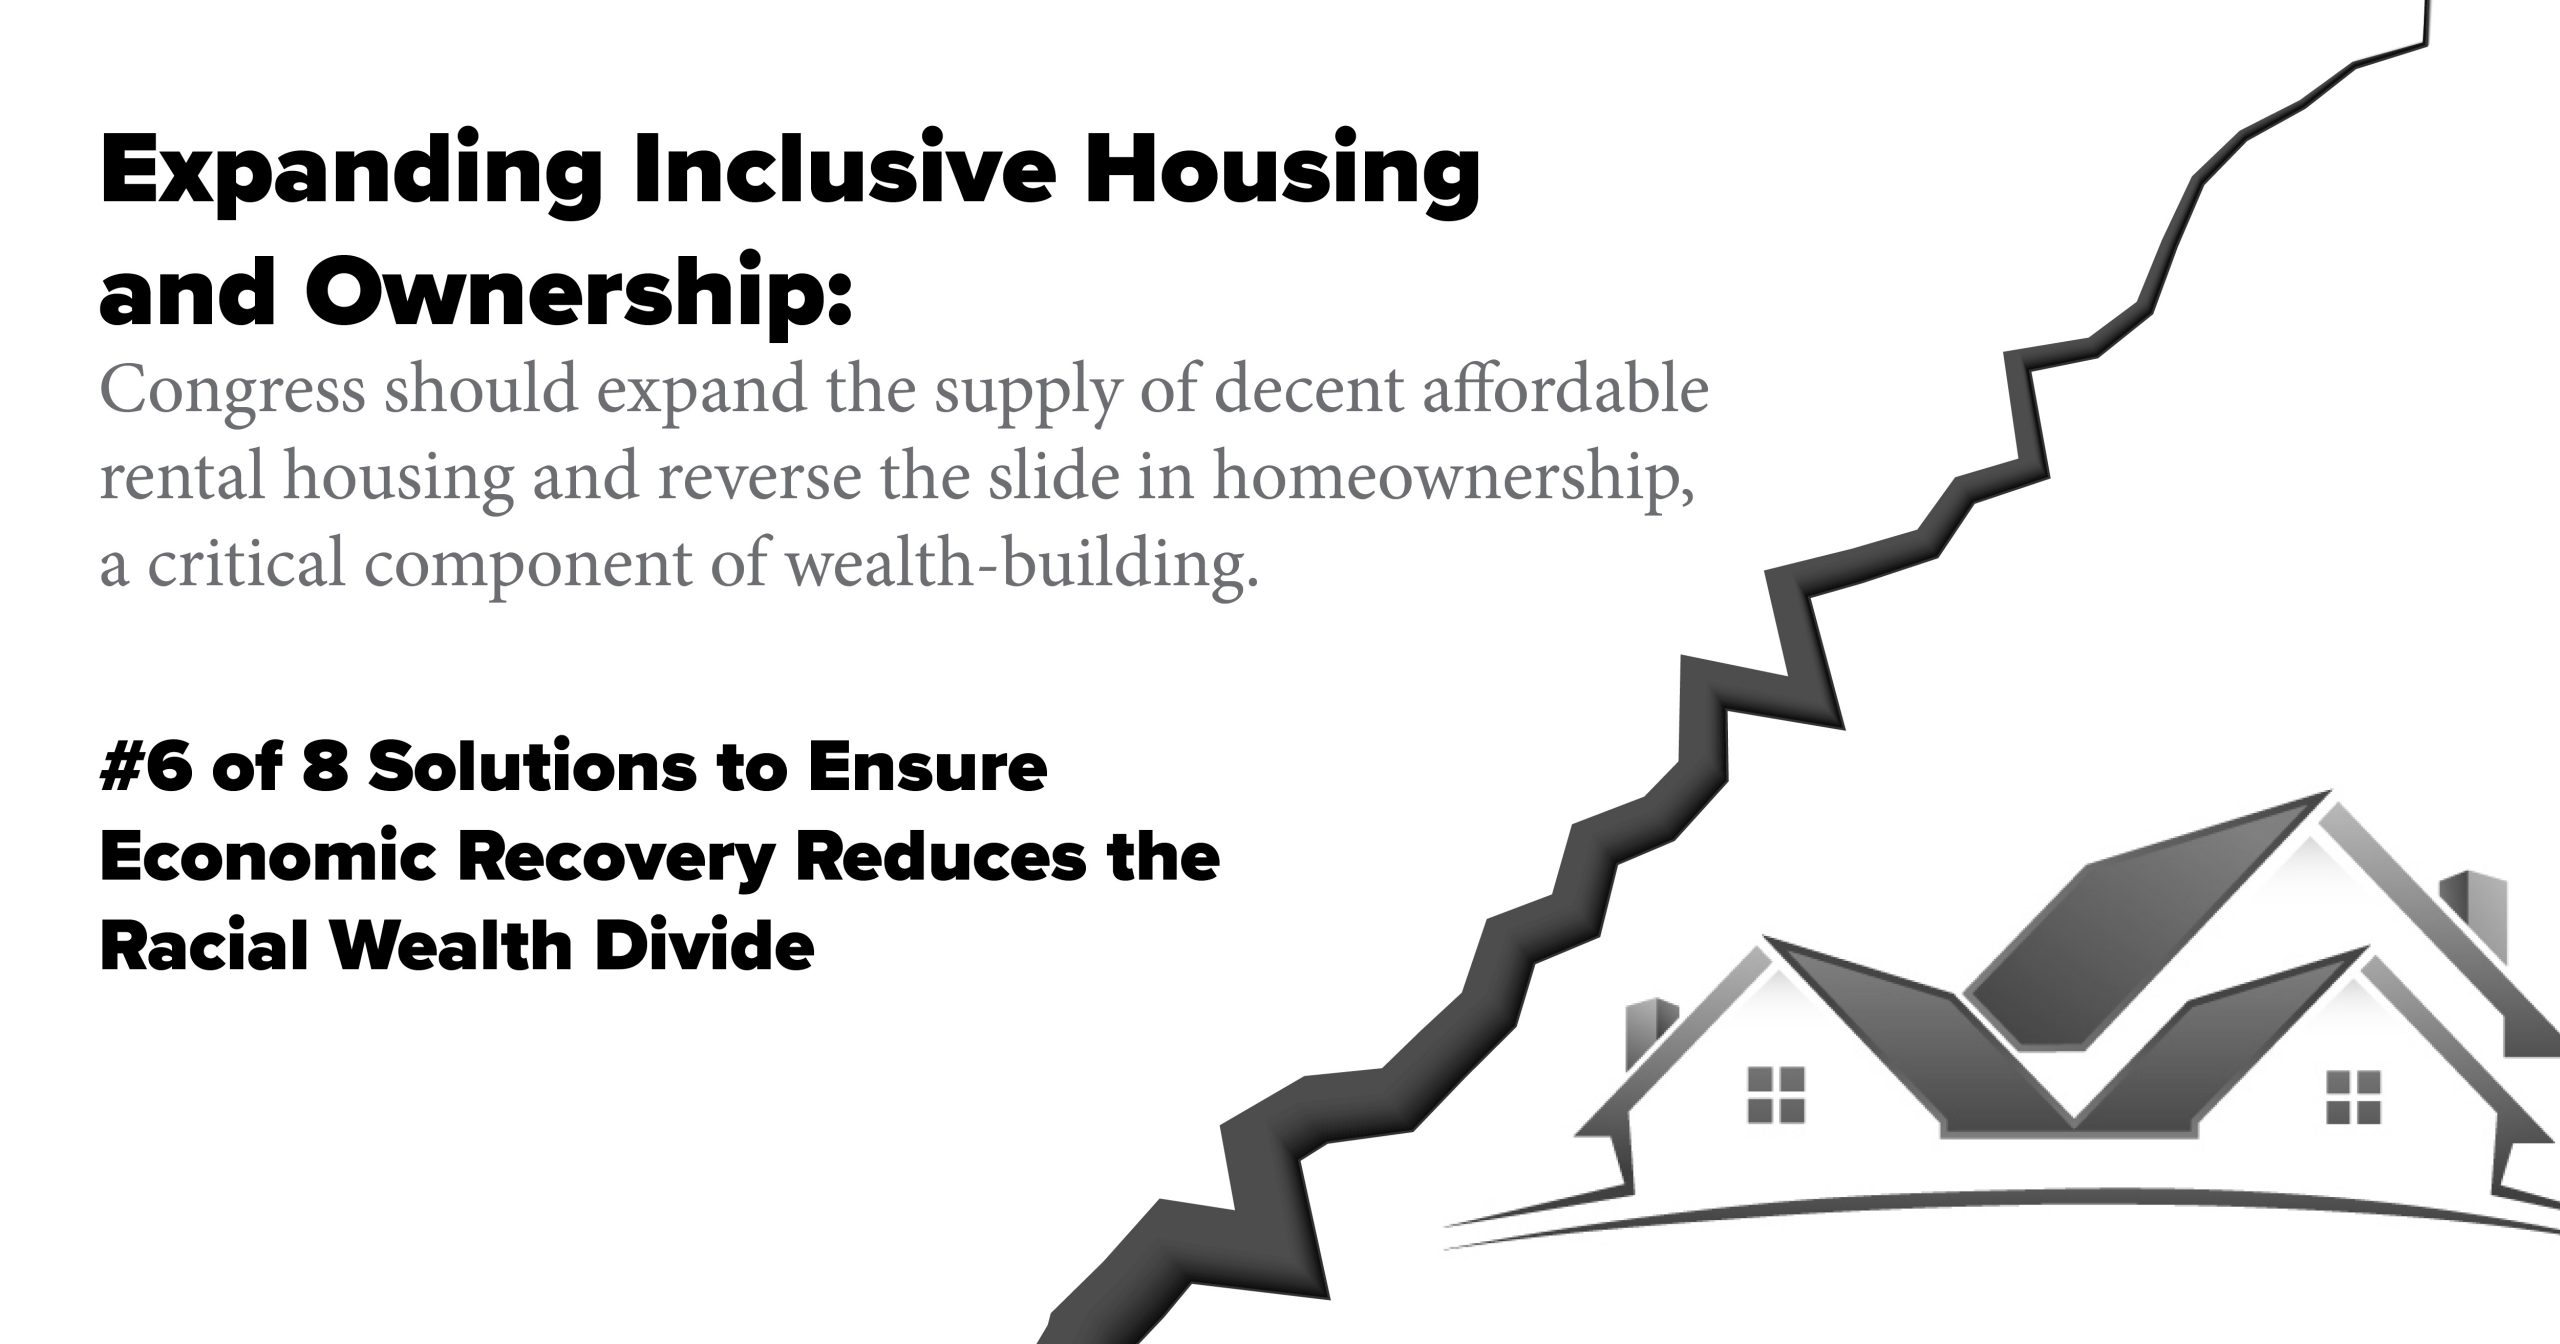 Expanding Inclusive Housing and Ownership. Congress should expand the supply of decent affordable rental housing and reverse the slide in homeownership, a critical component of wealth-building.